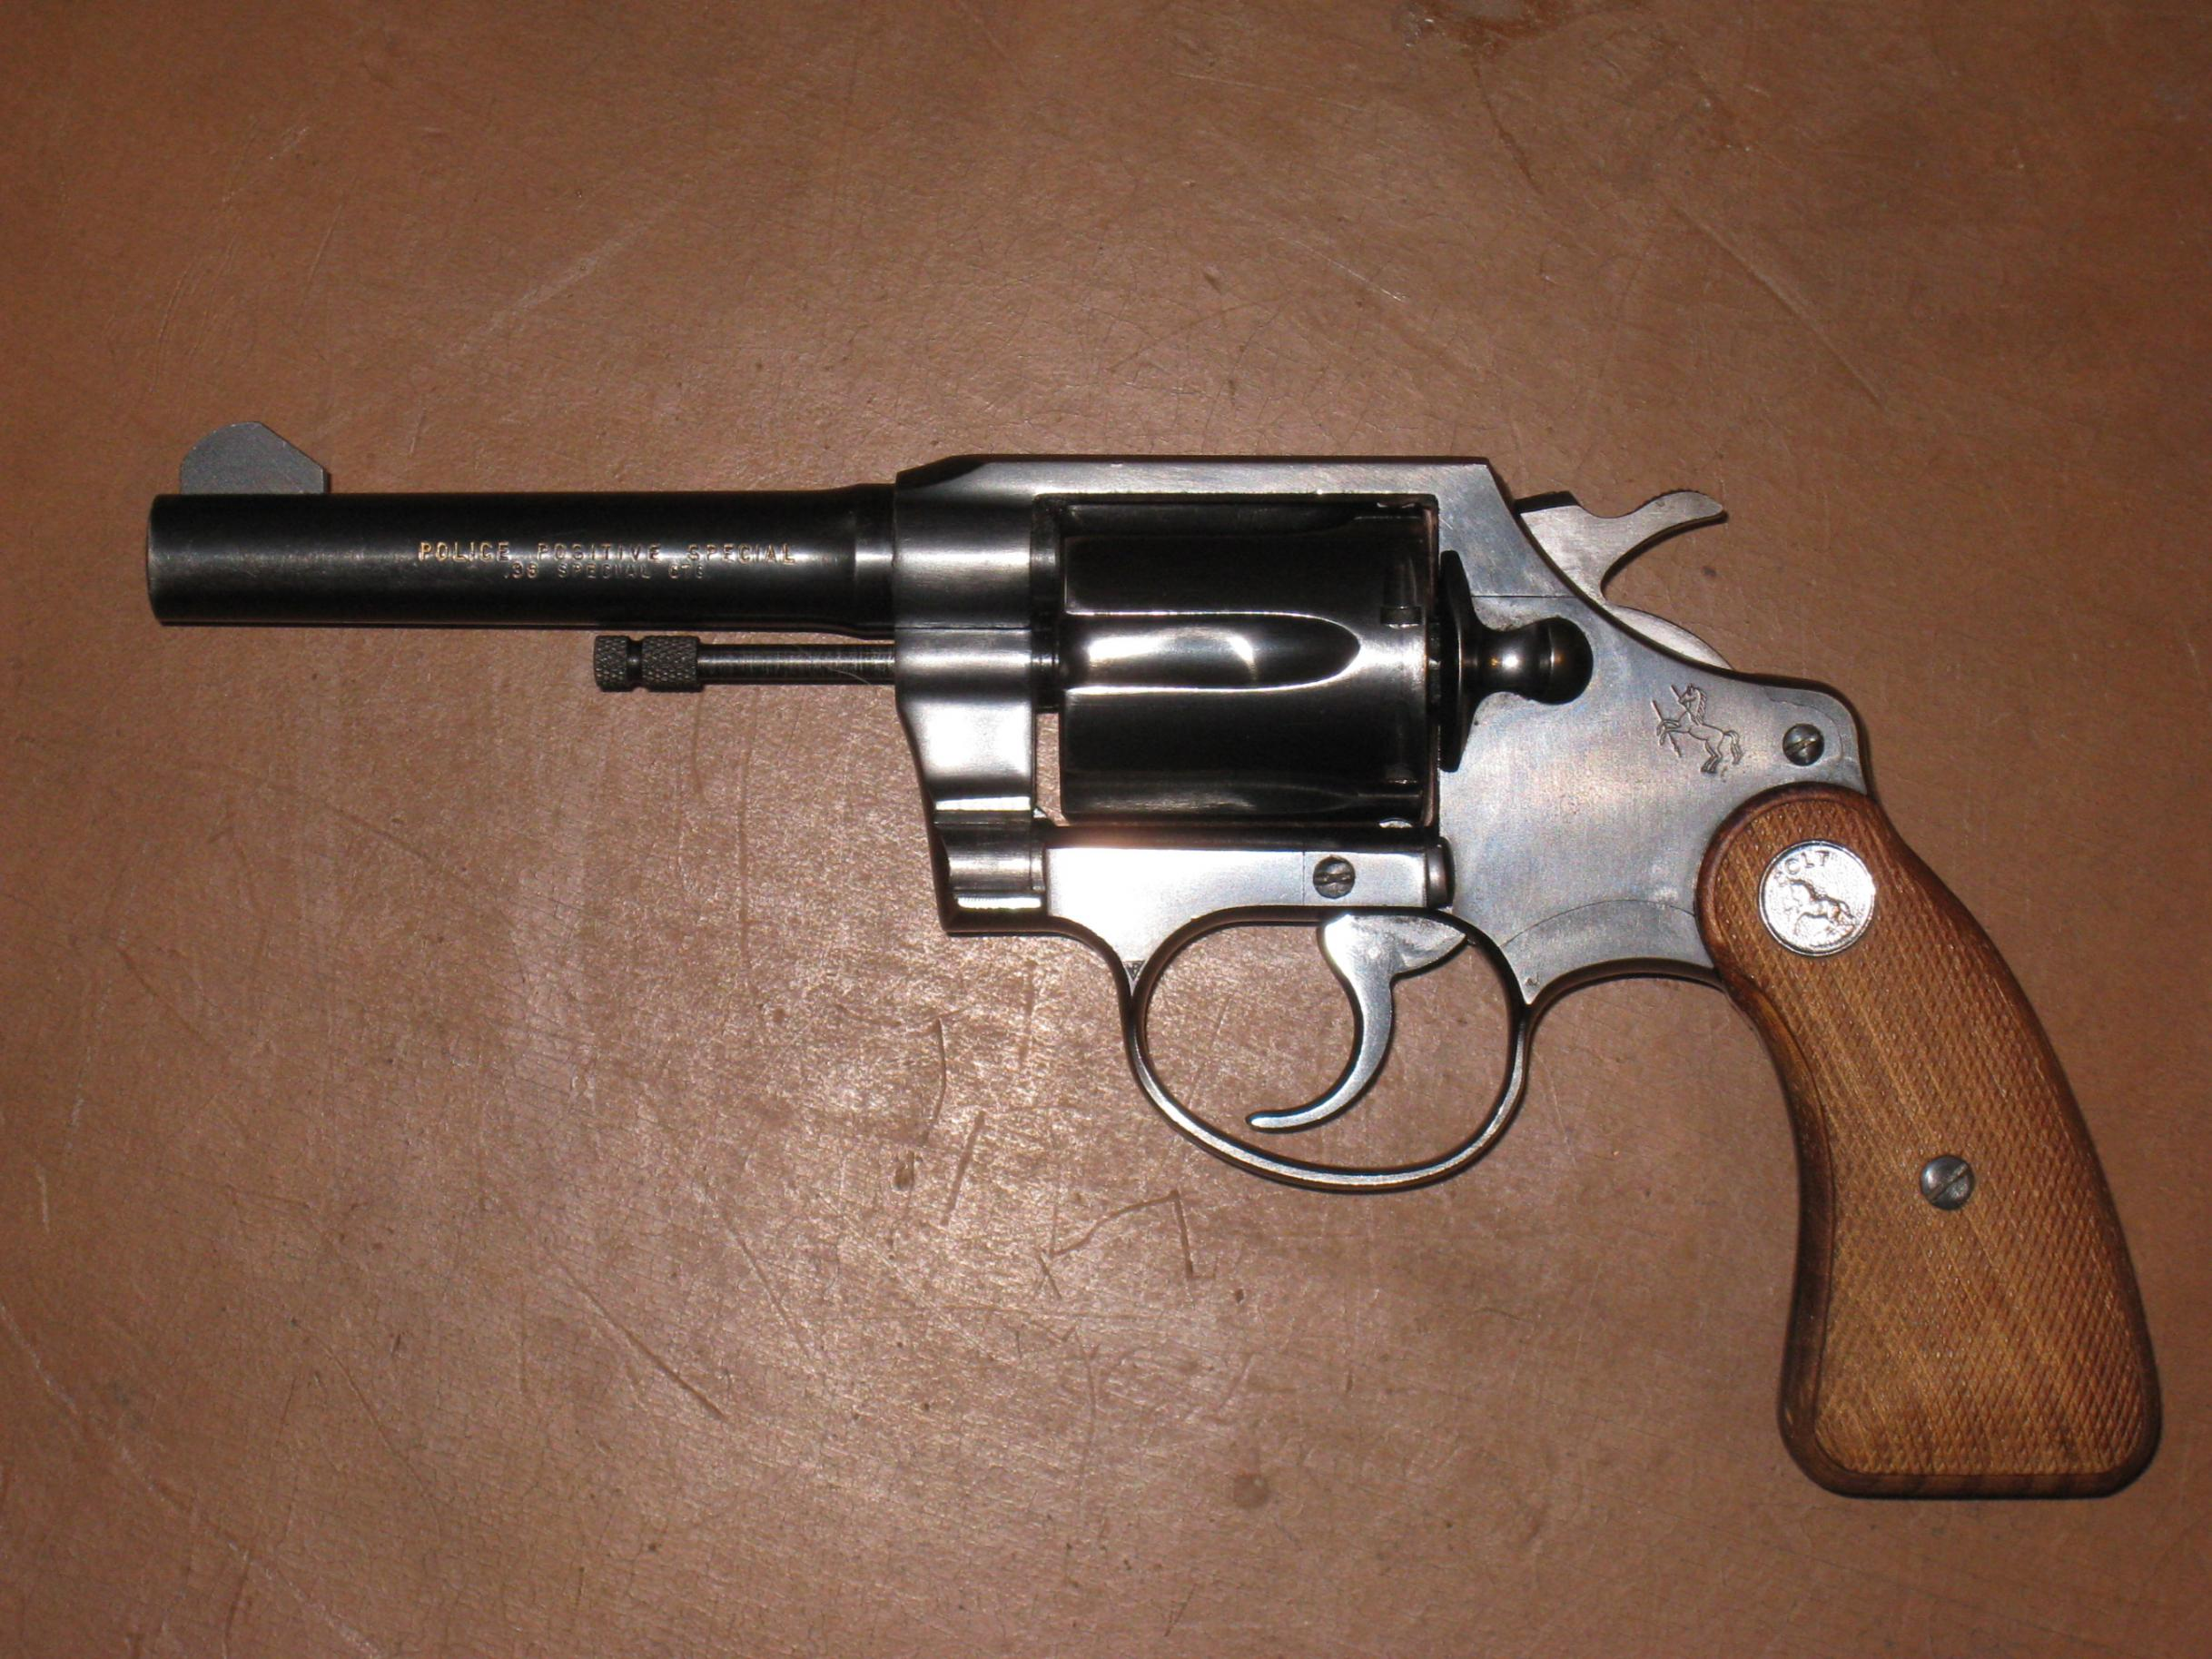 Does Anyone Out There Take Colt Revolvers Seriously?-picture-015.jpg